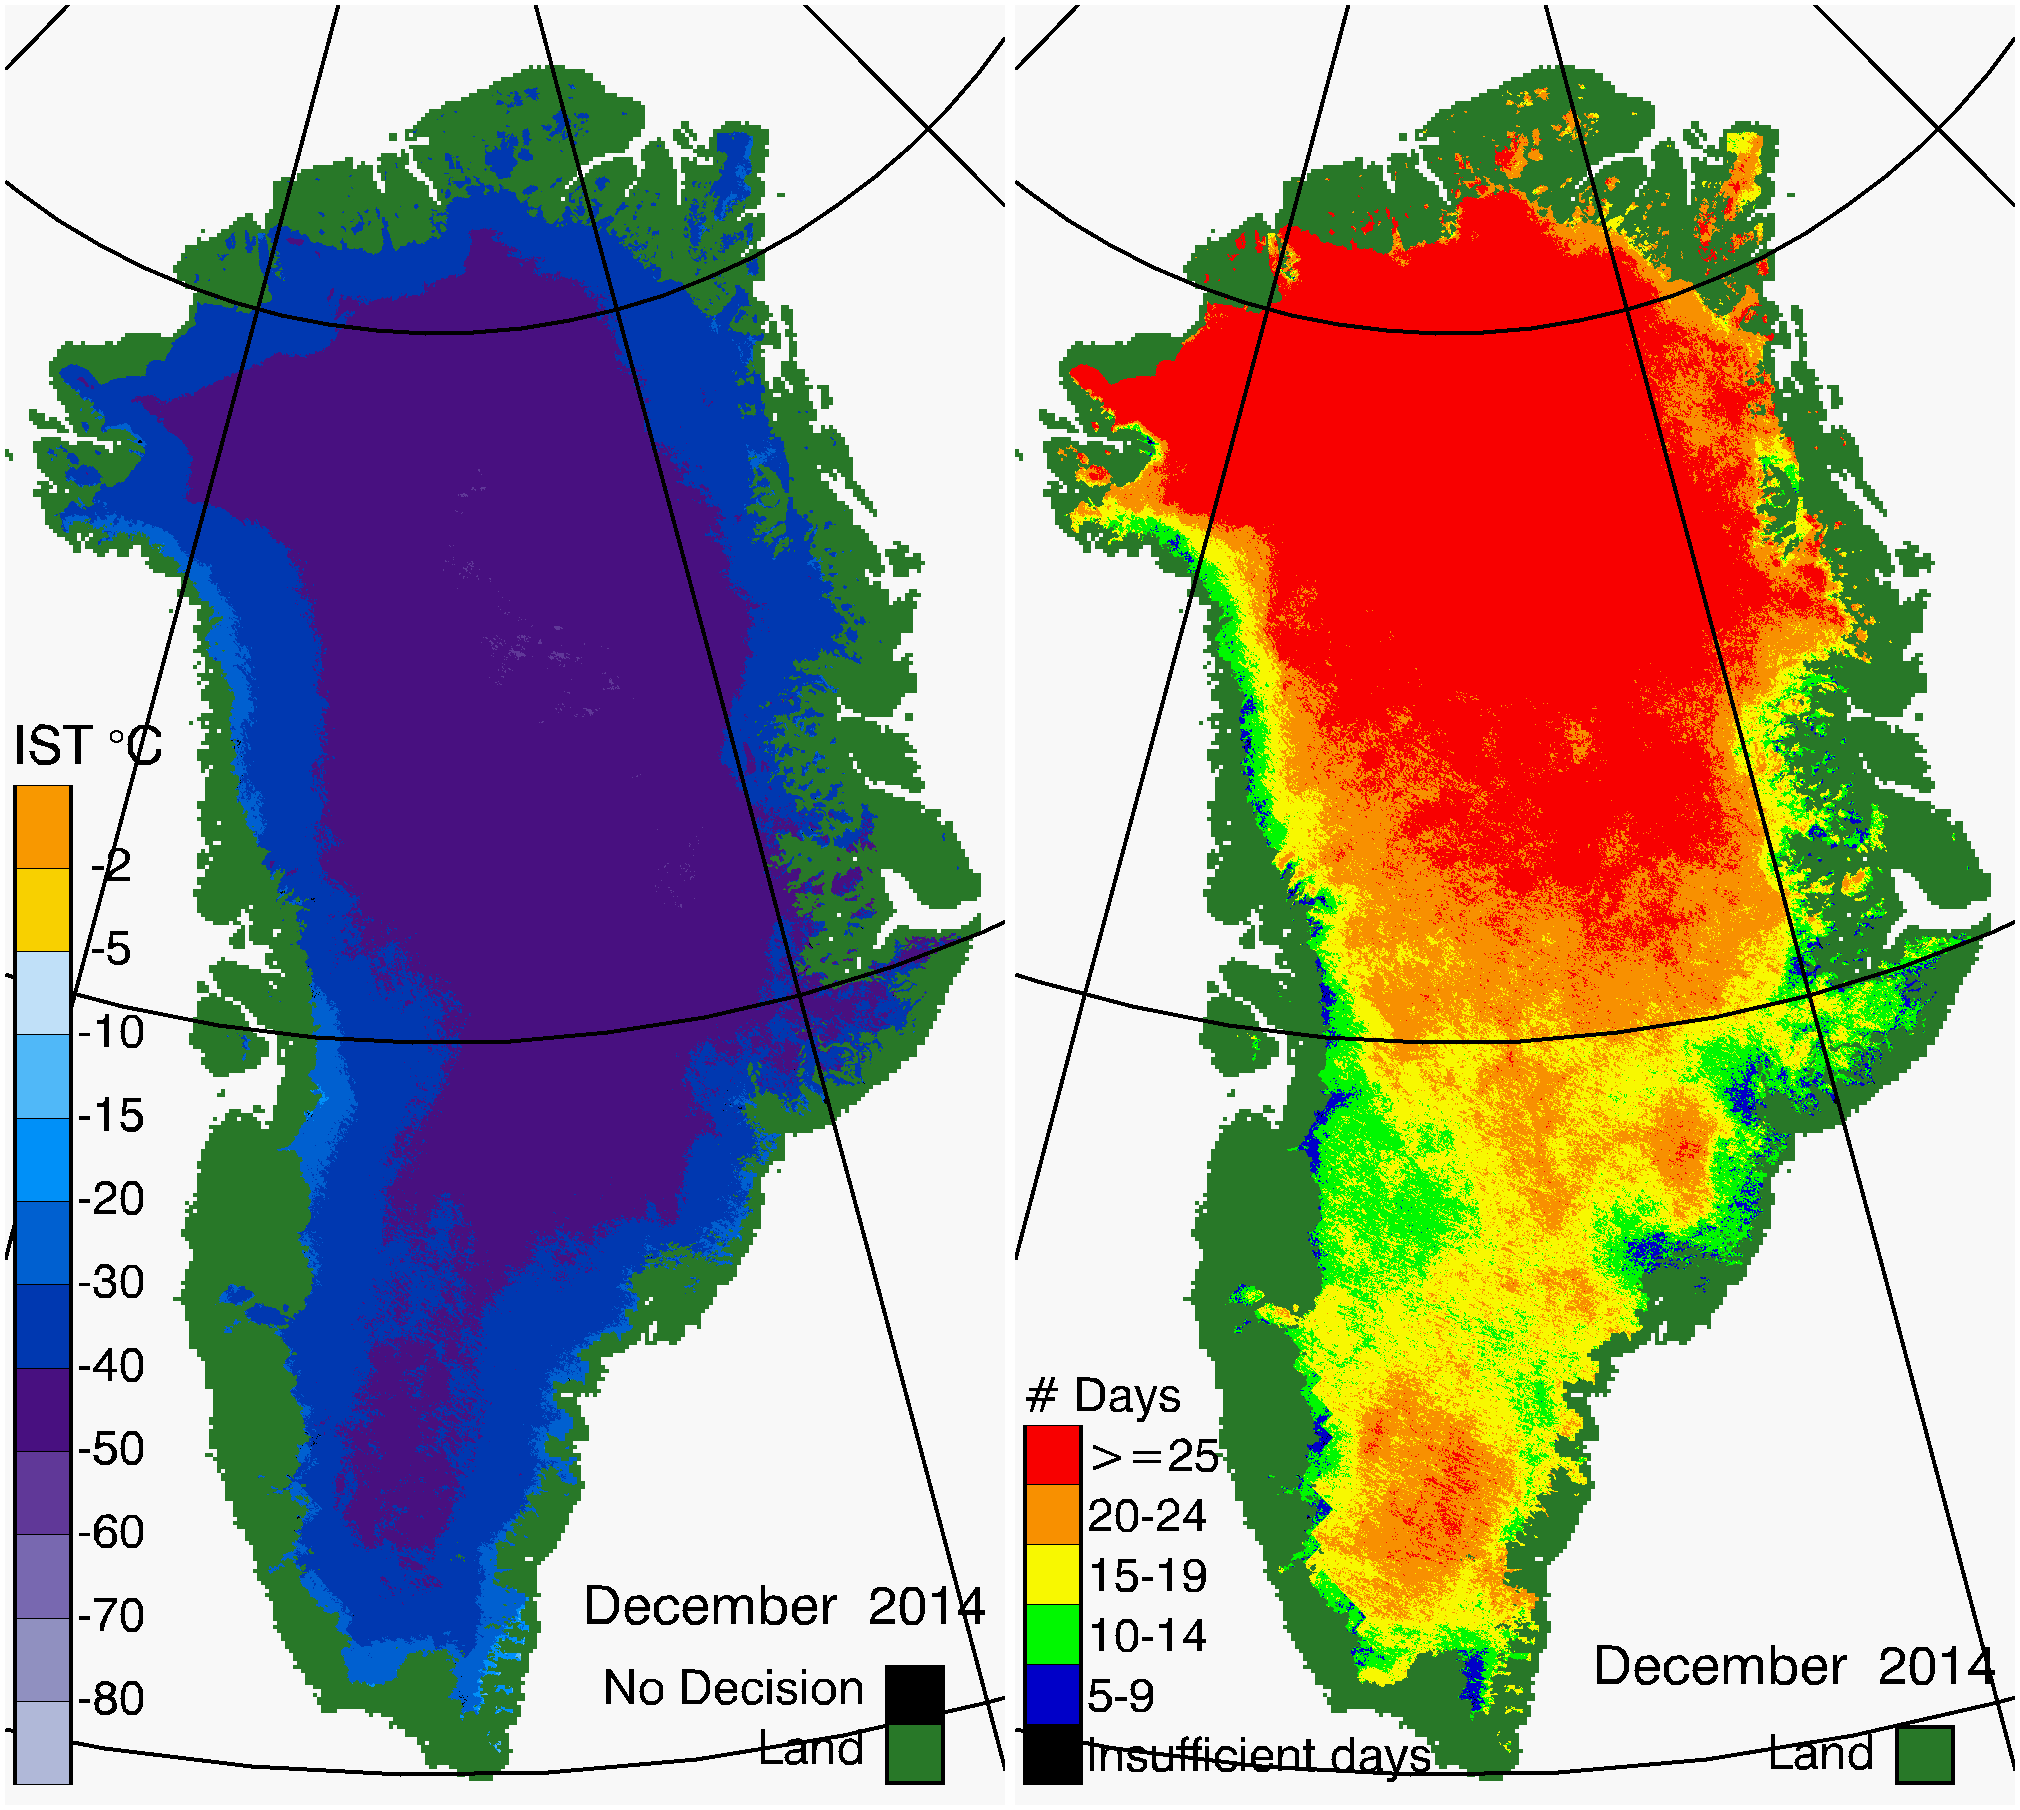 Greenland Surface Temp 12/2014